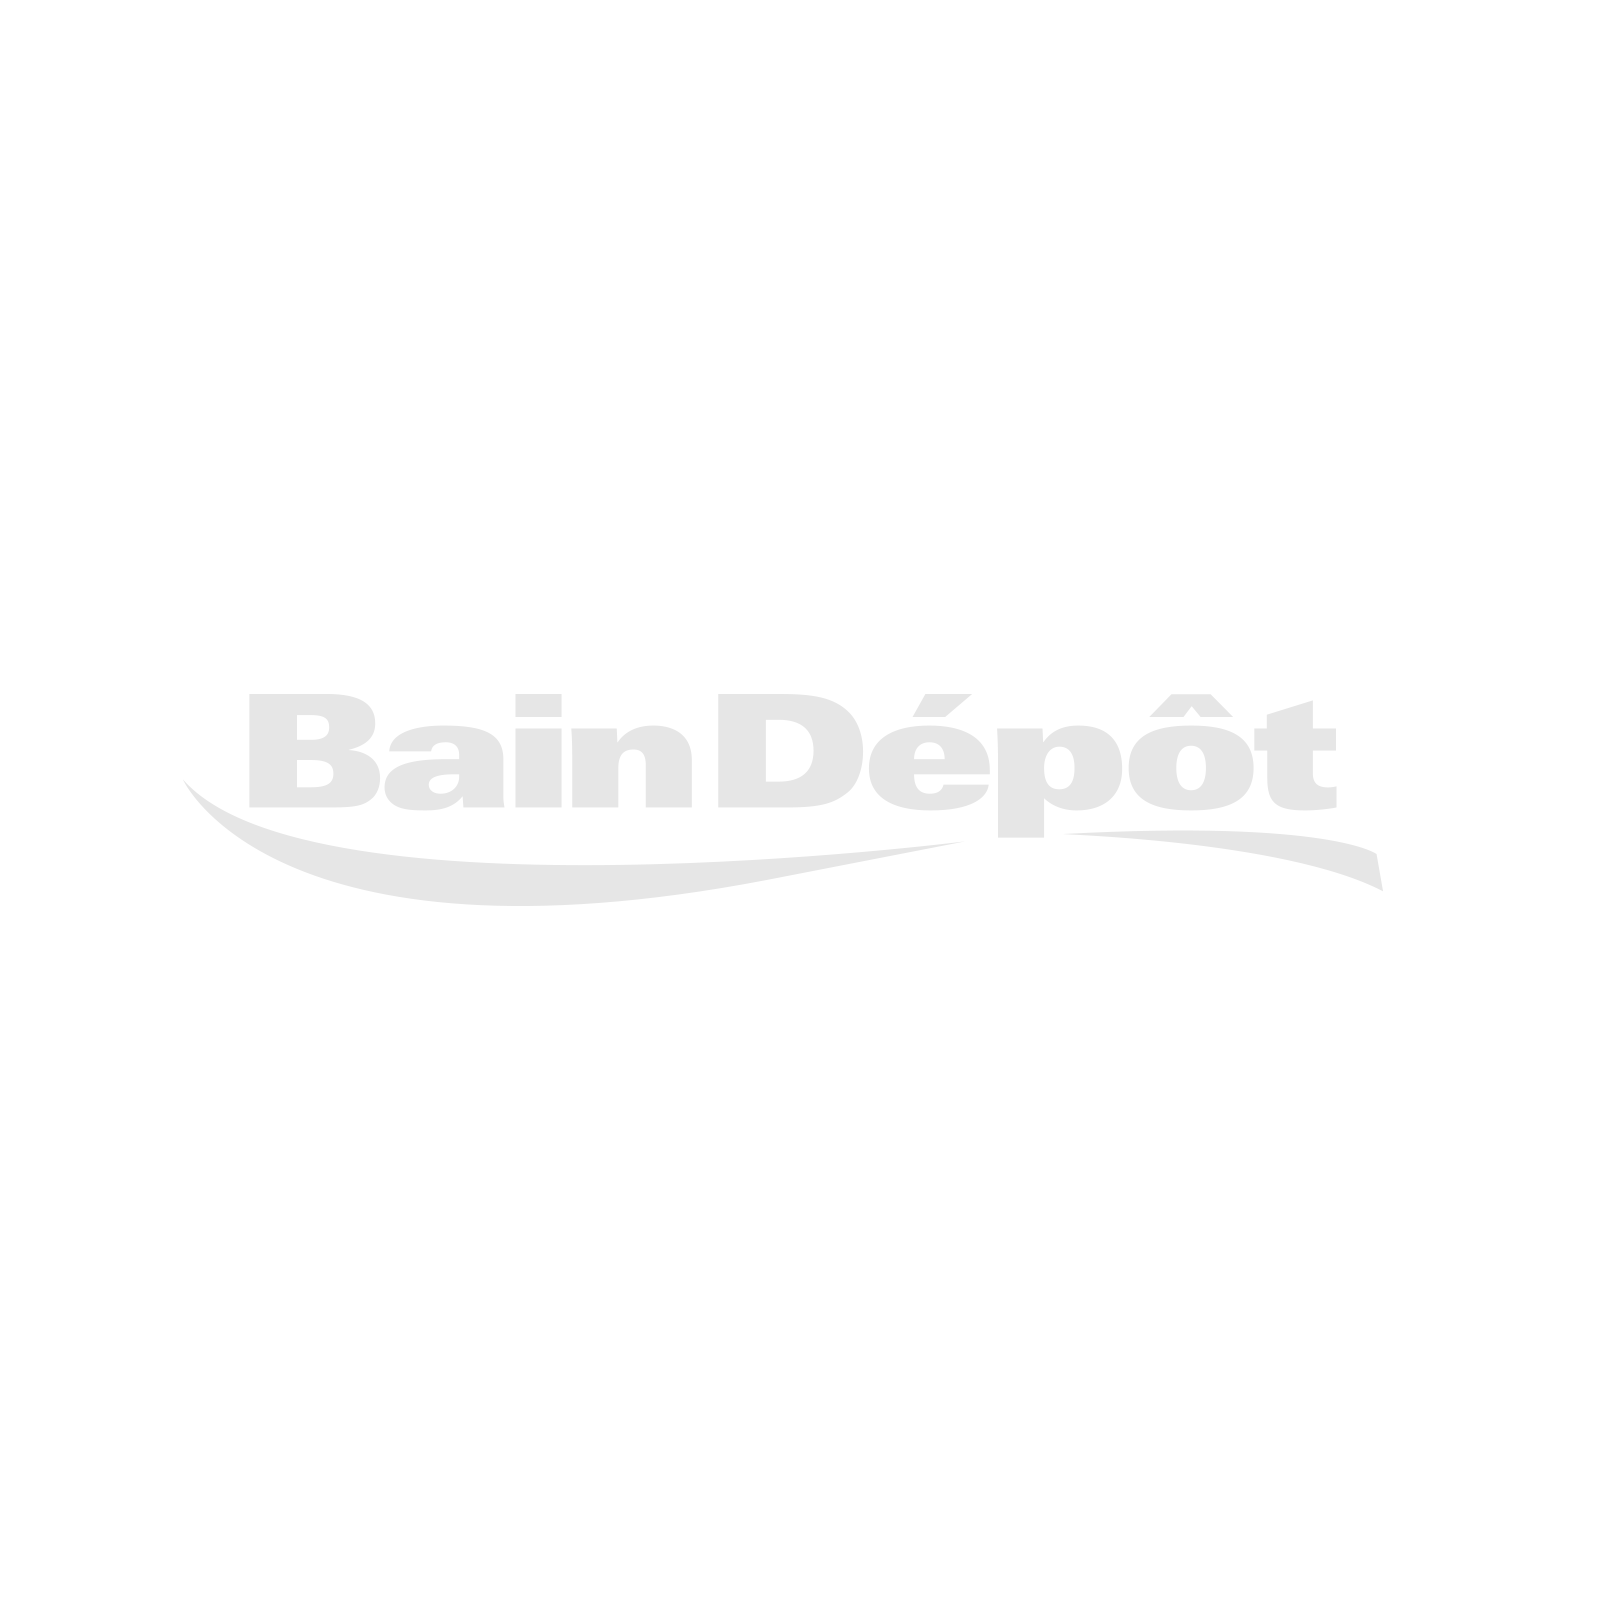 Black and white automatic soap dispenser - 12 fl. oz.